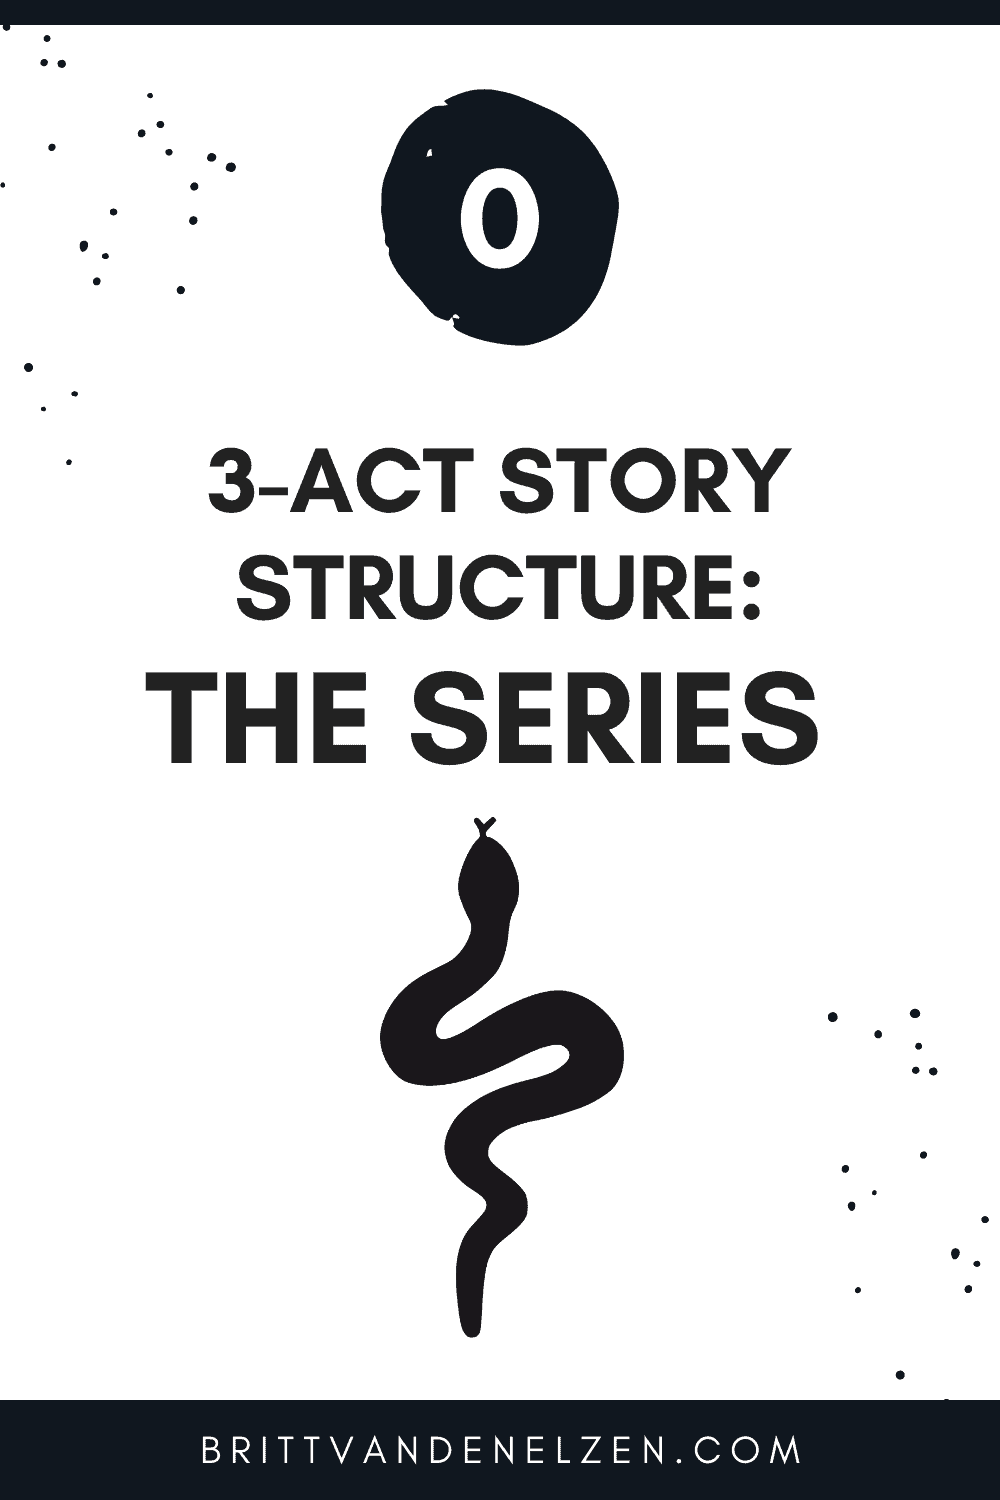 3-act story structure